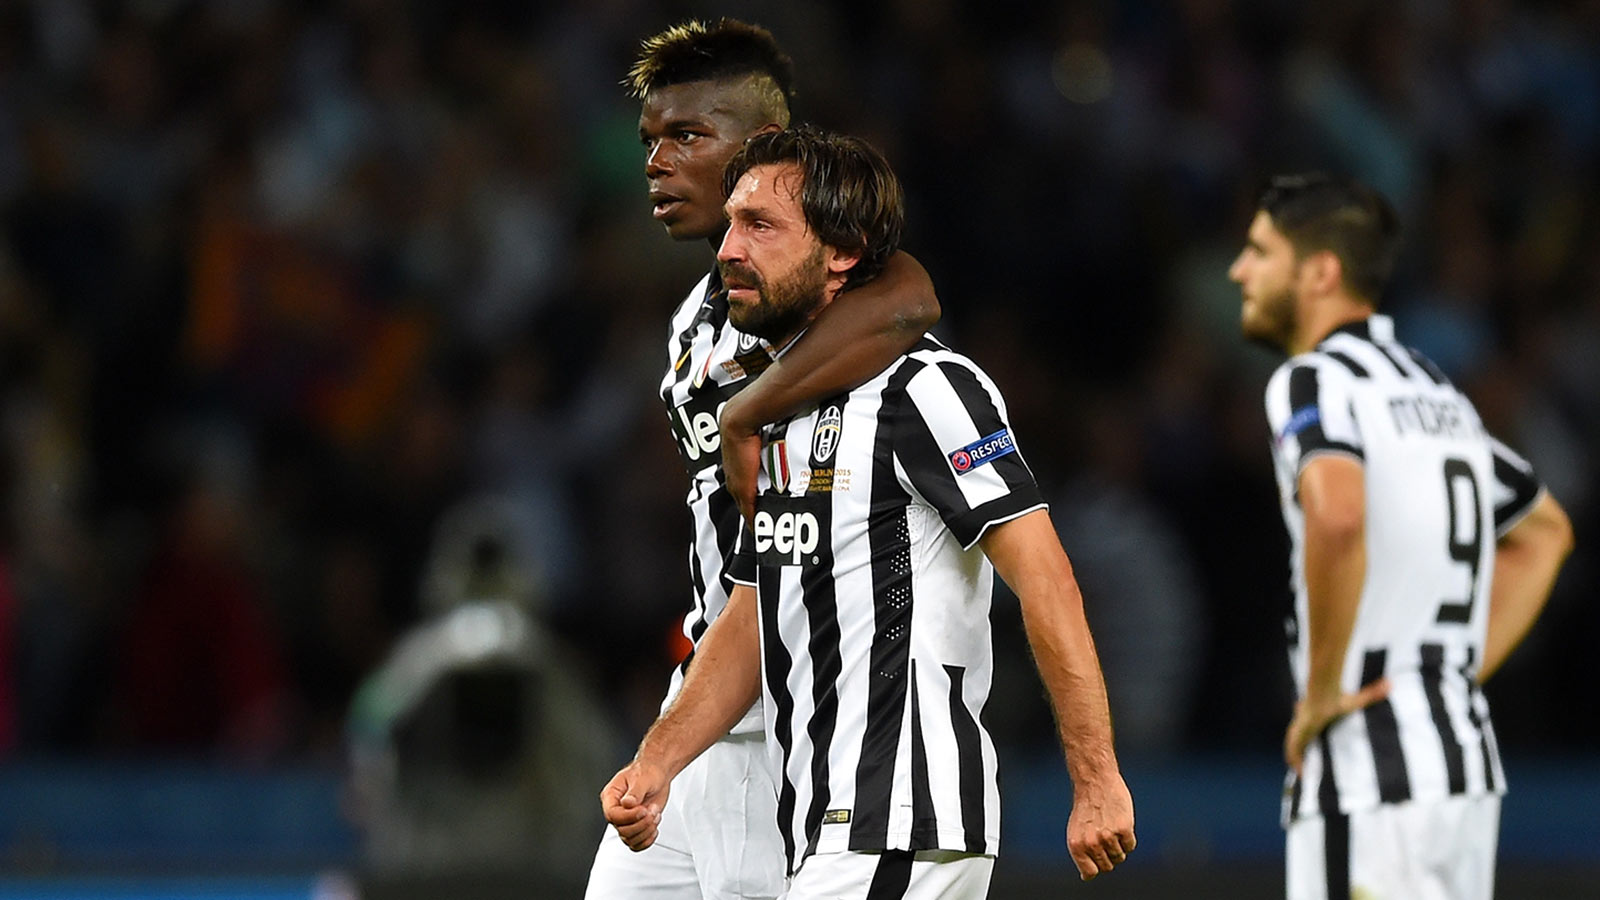 Pirlo hails Juve midfielder Pogba as the best youngster he's seen